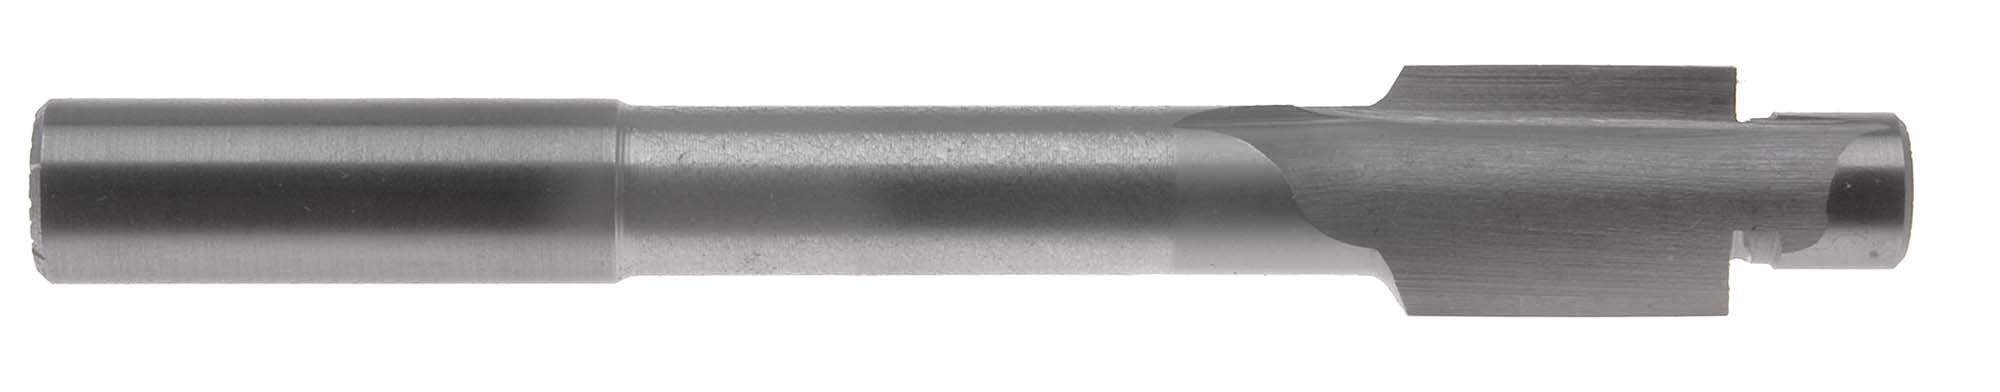 # 10  2 Flute Solid Counterbore, High Speed Steel